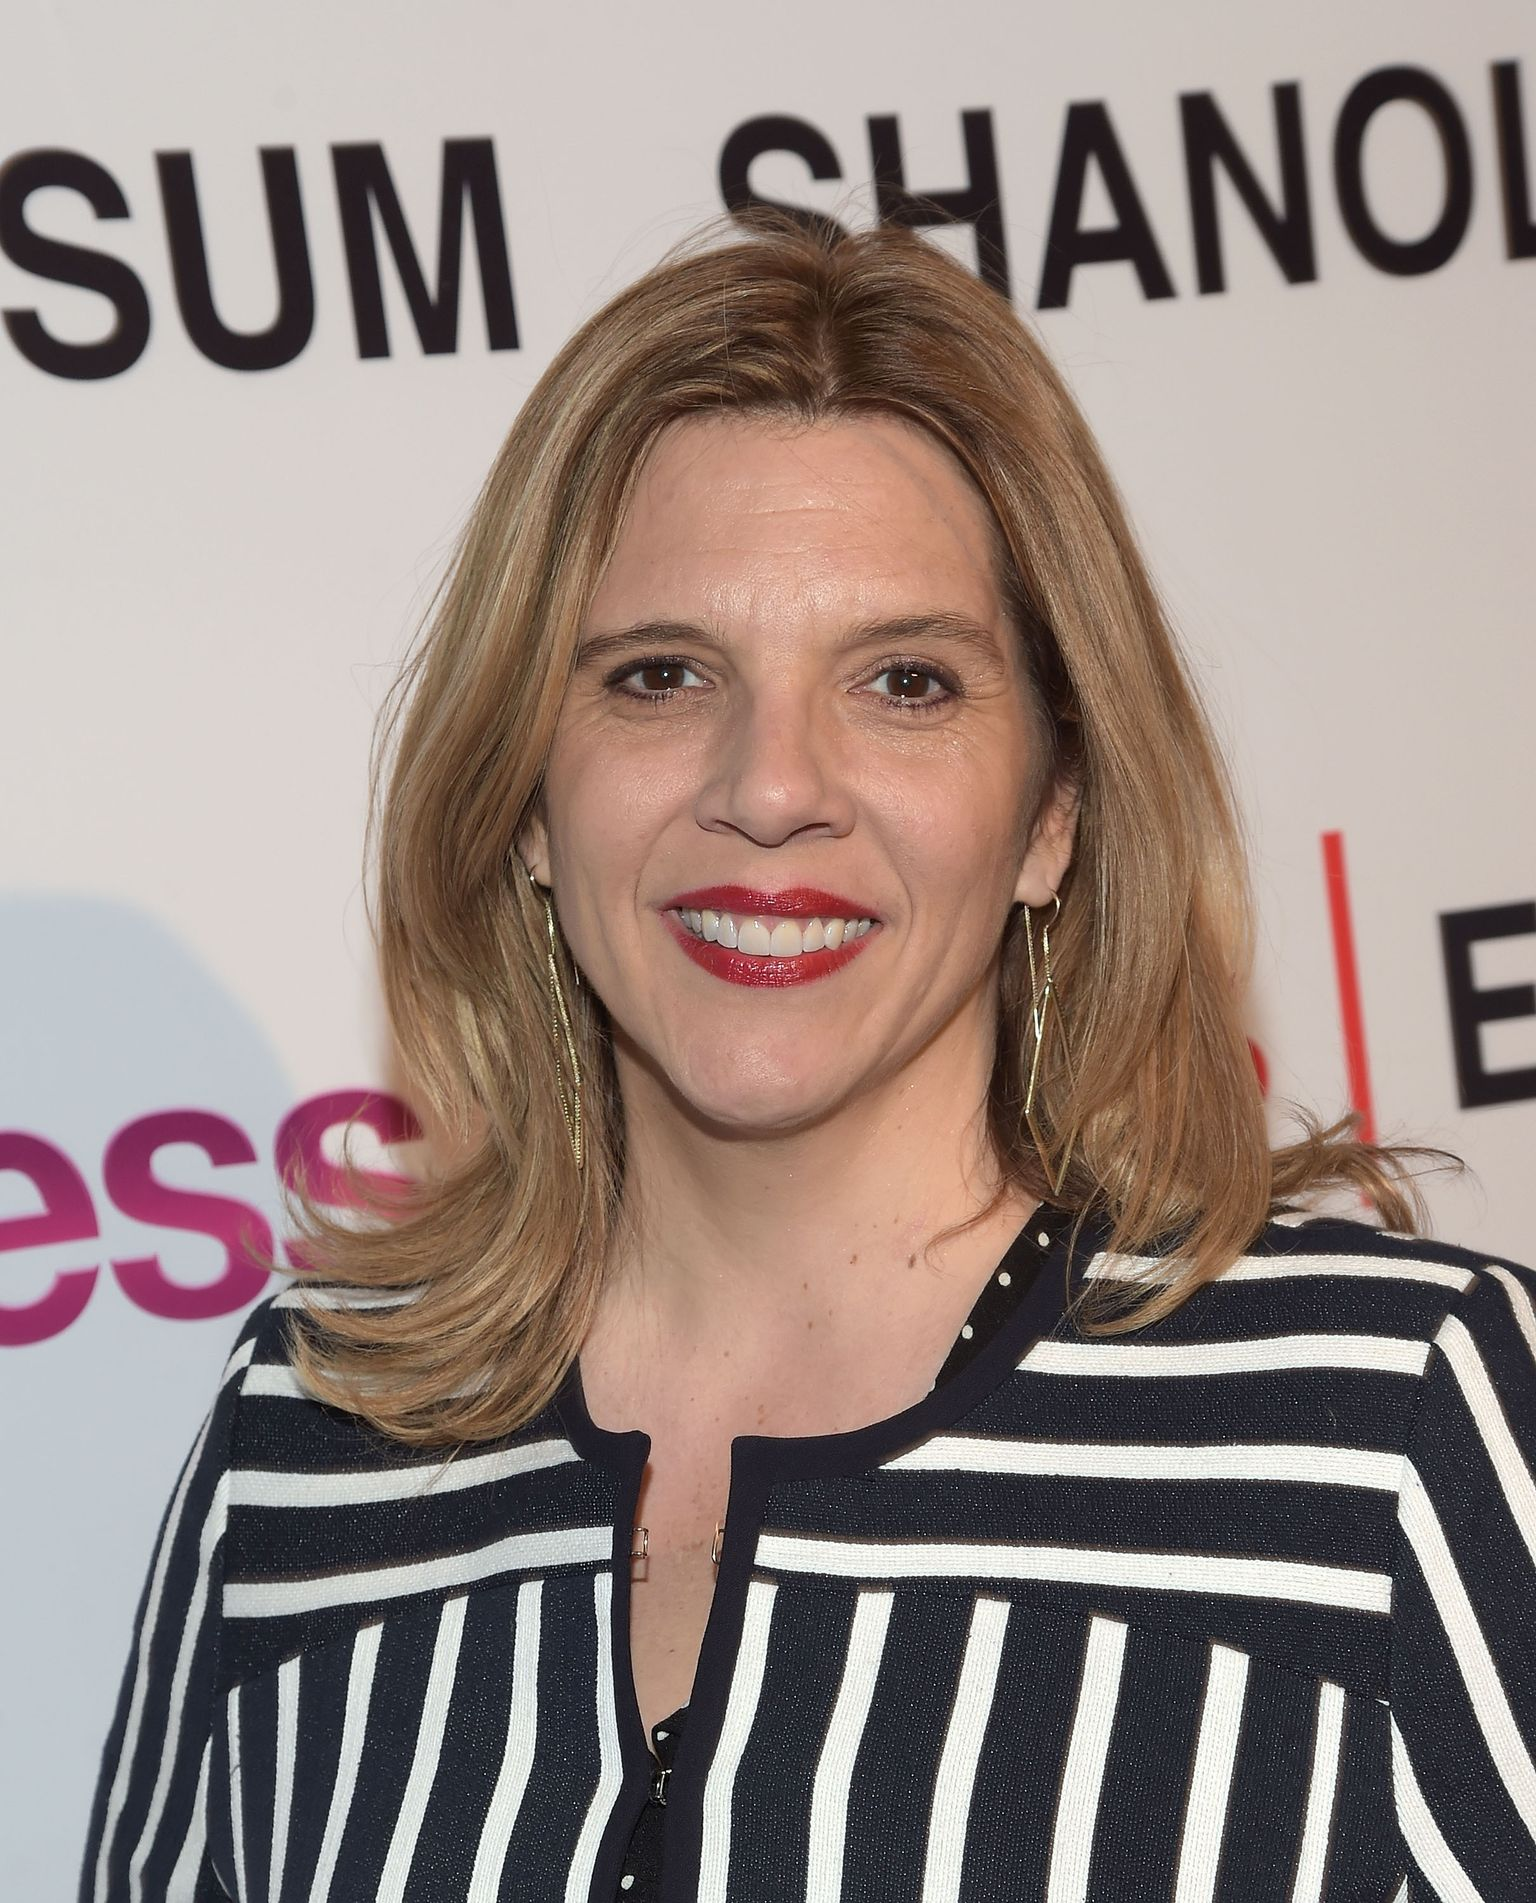 """Krista Vernoff at the Screening And Panel Discussion With The Women Of Showtime's """"Shameless"""" at The London Hotel on March 22, 2016 in West Hollywood, California. 